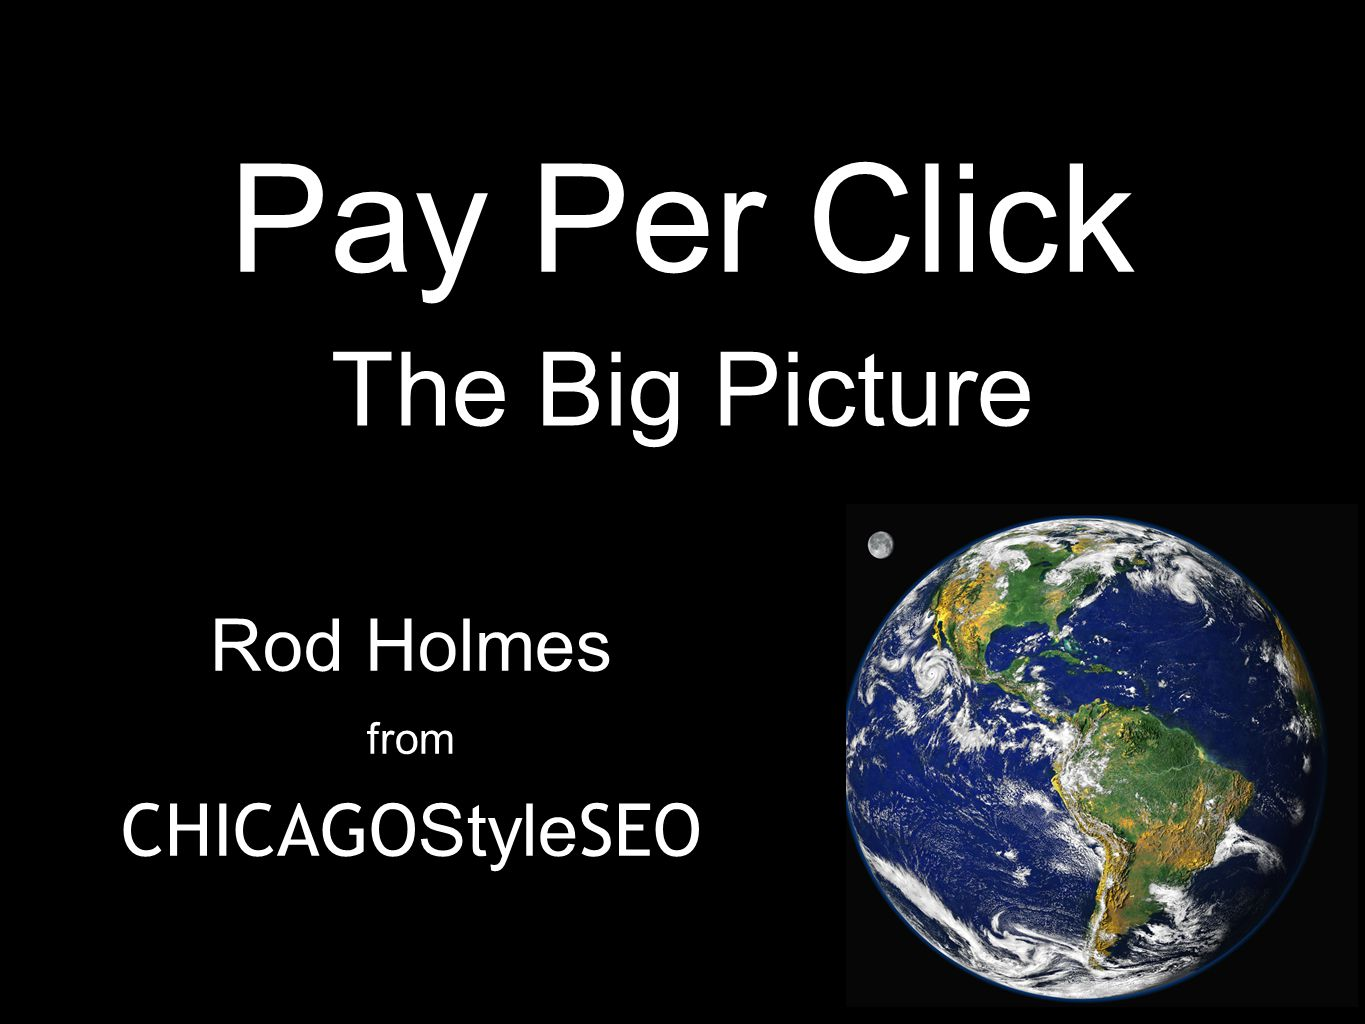 Pay Per Click Rod Holmes from CHICAGO Style SEO The Big Picture